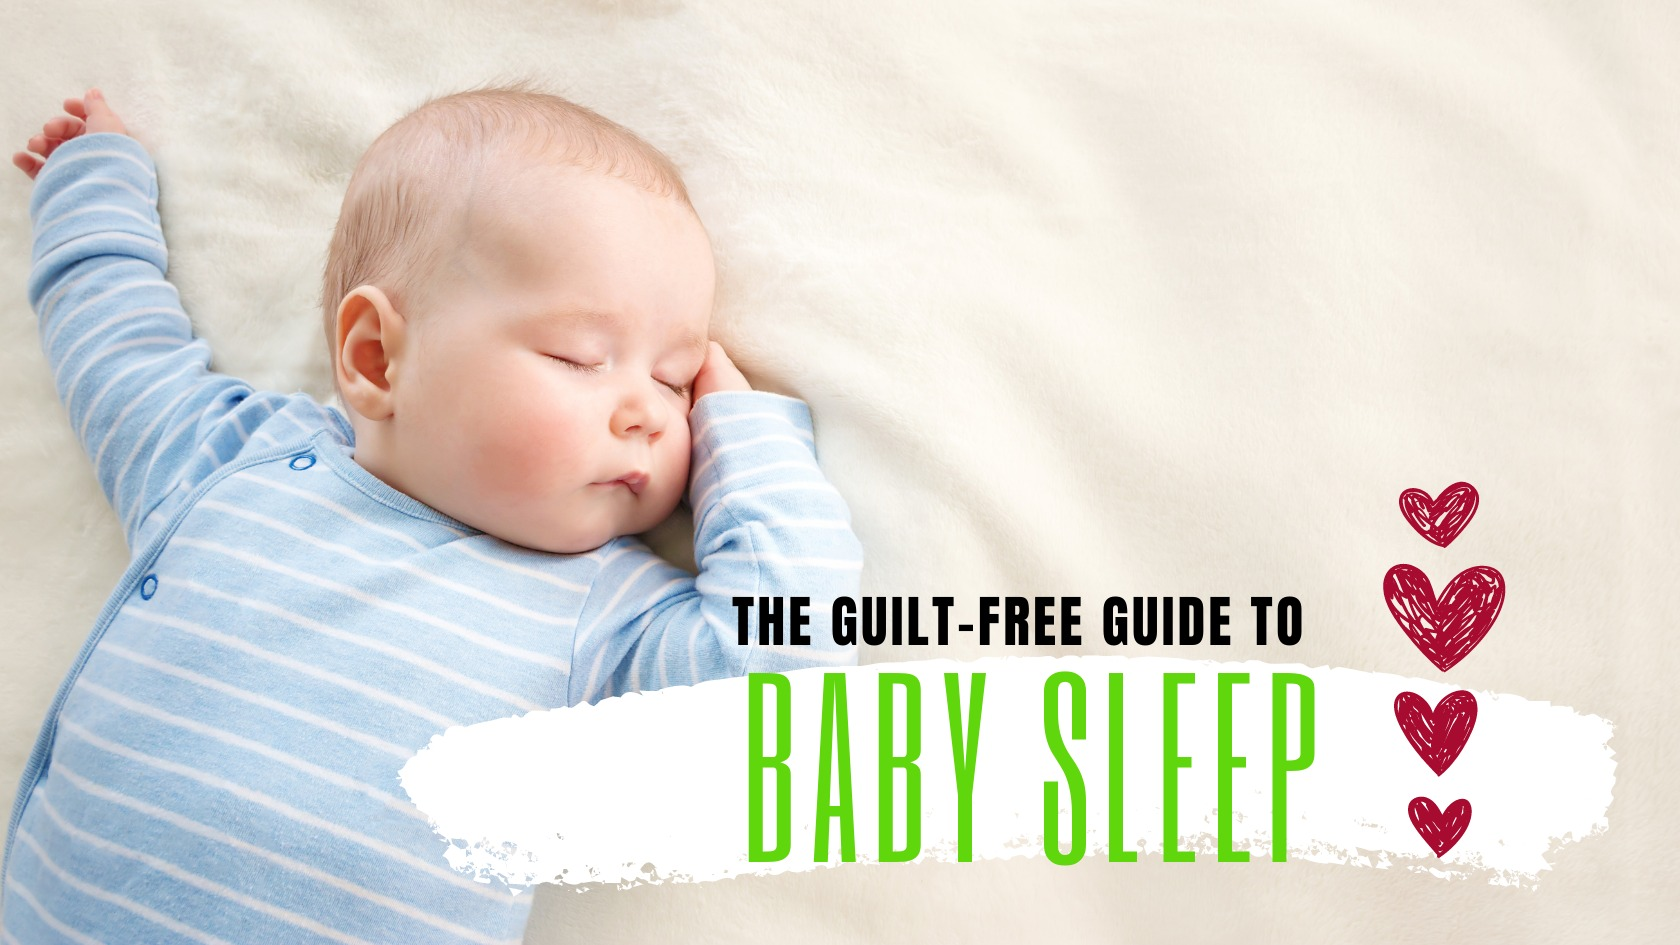 Guilt-free guide to baby sleep